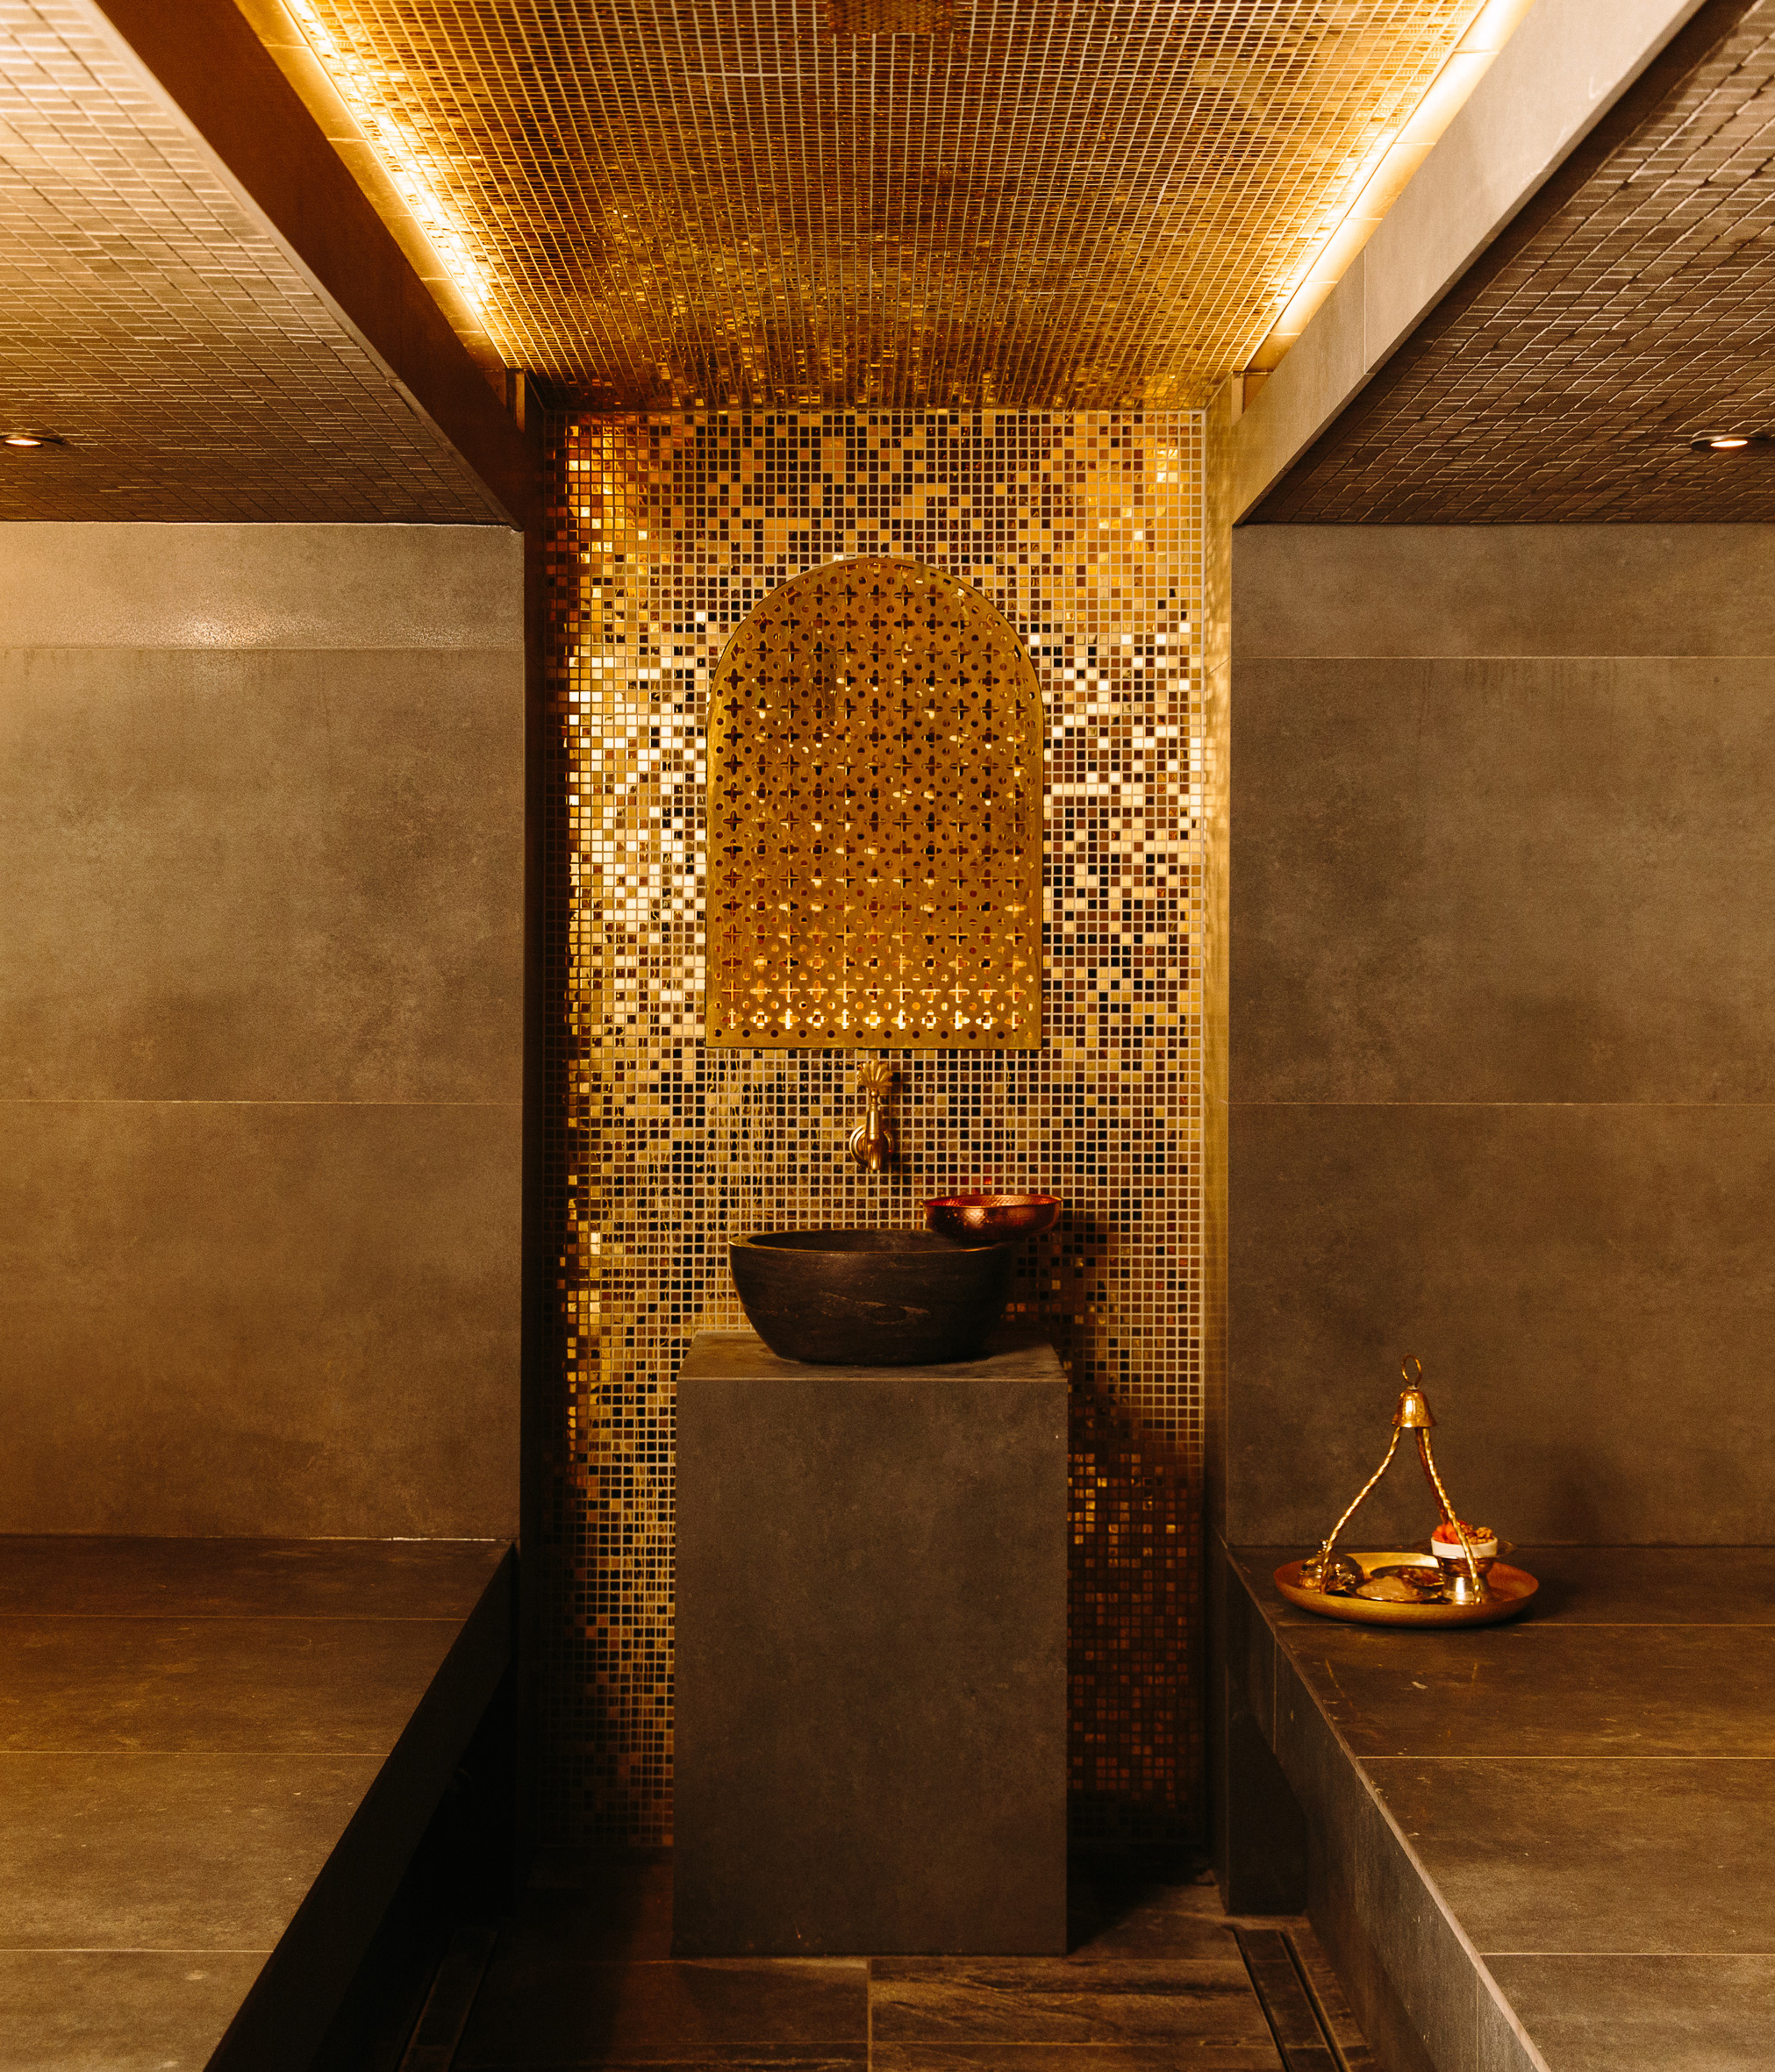 The hammam at Hepburn Bathhouse and Spa